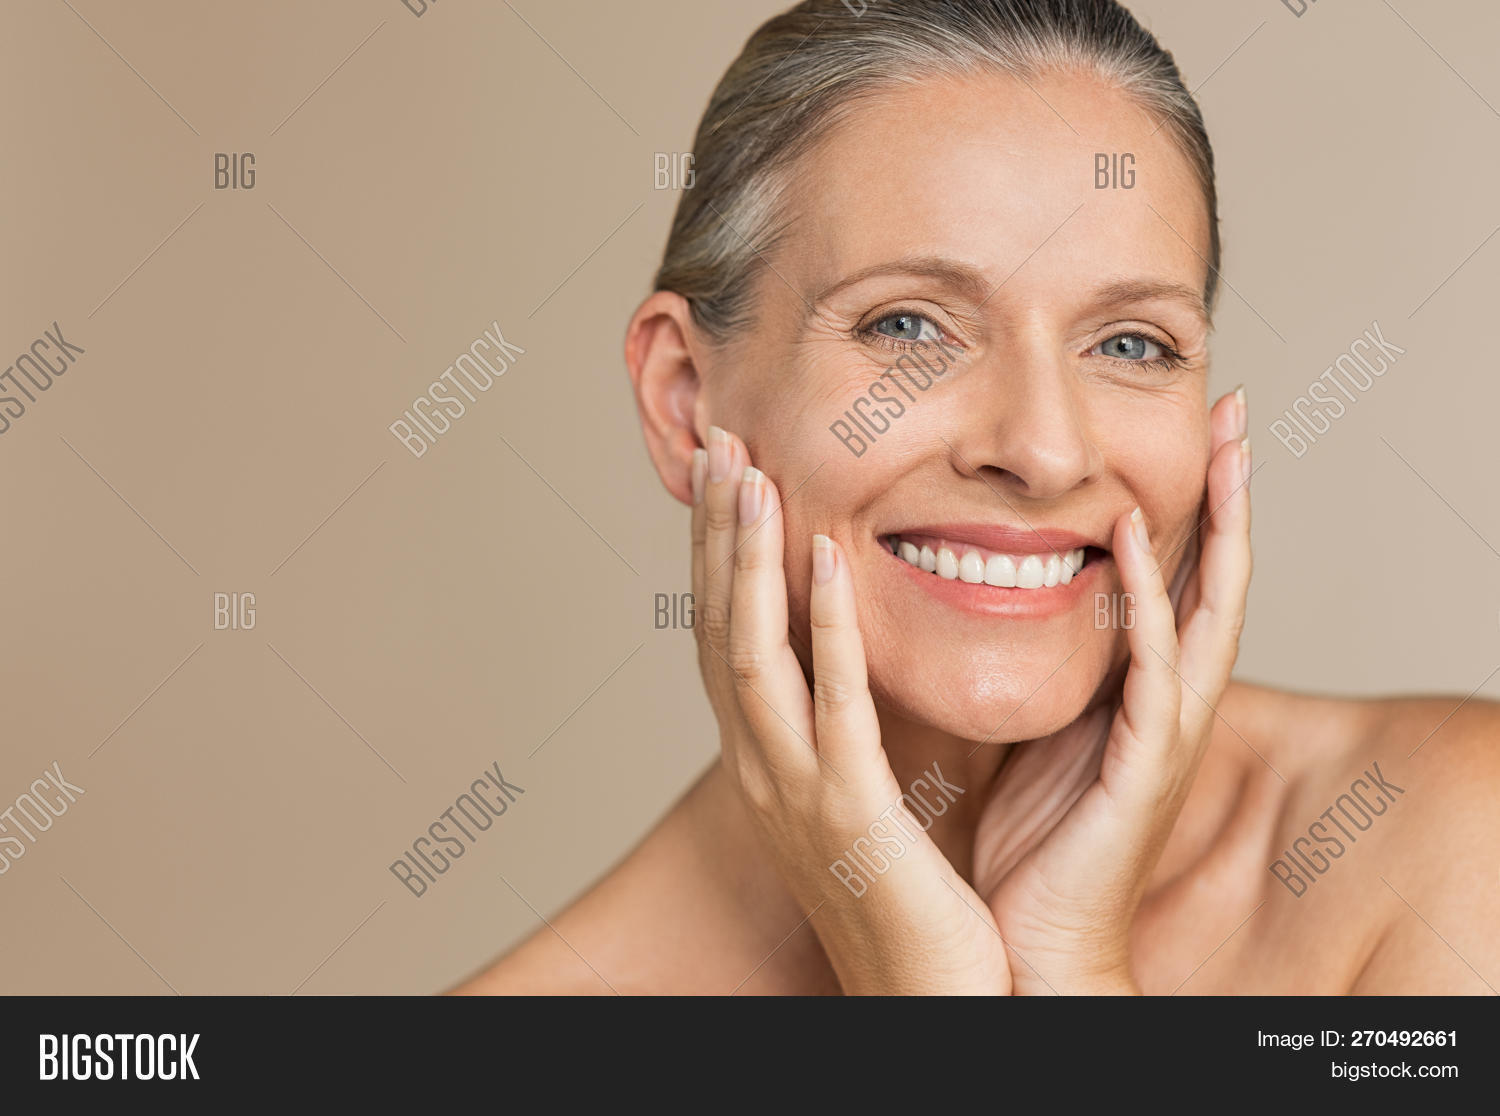 Beauty portrait of mature woman smiling with hand on face. Closeup face of happy senior woman feelin